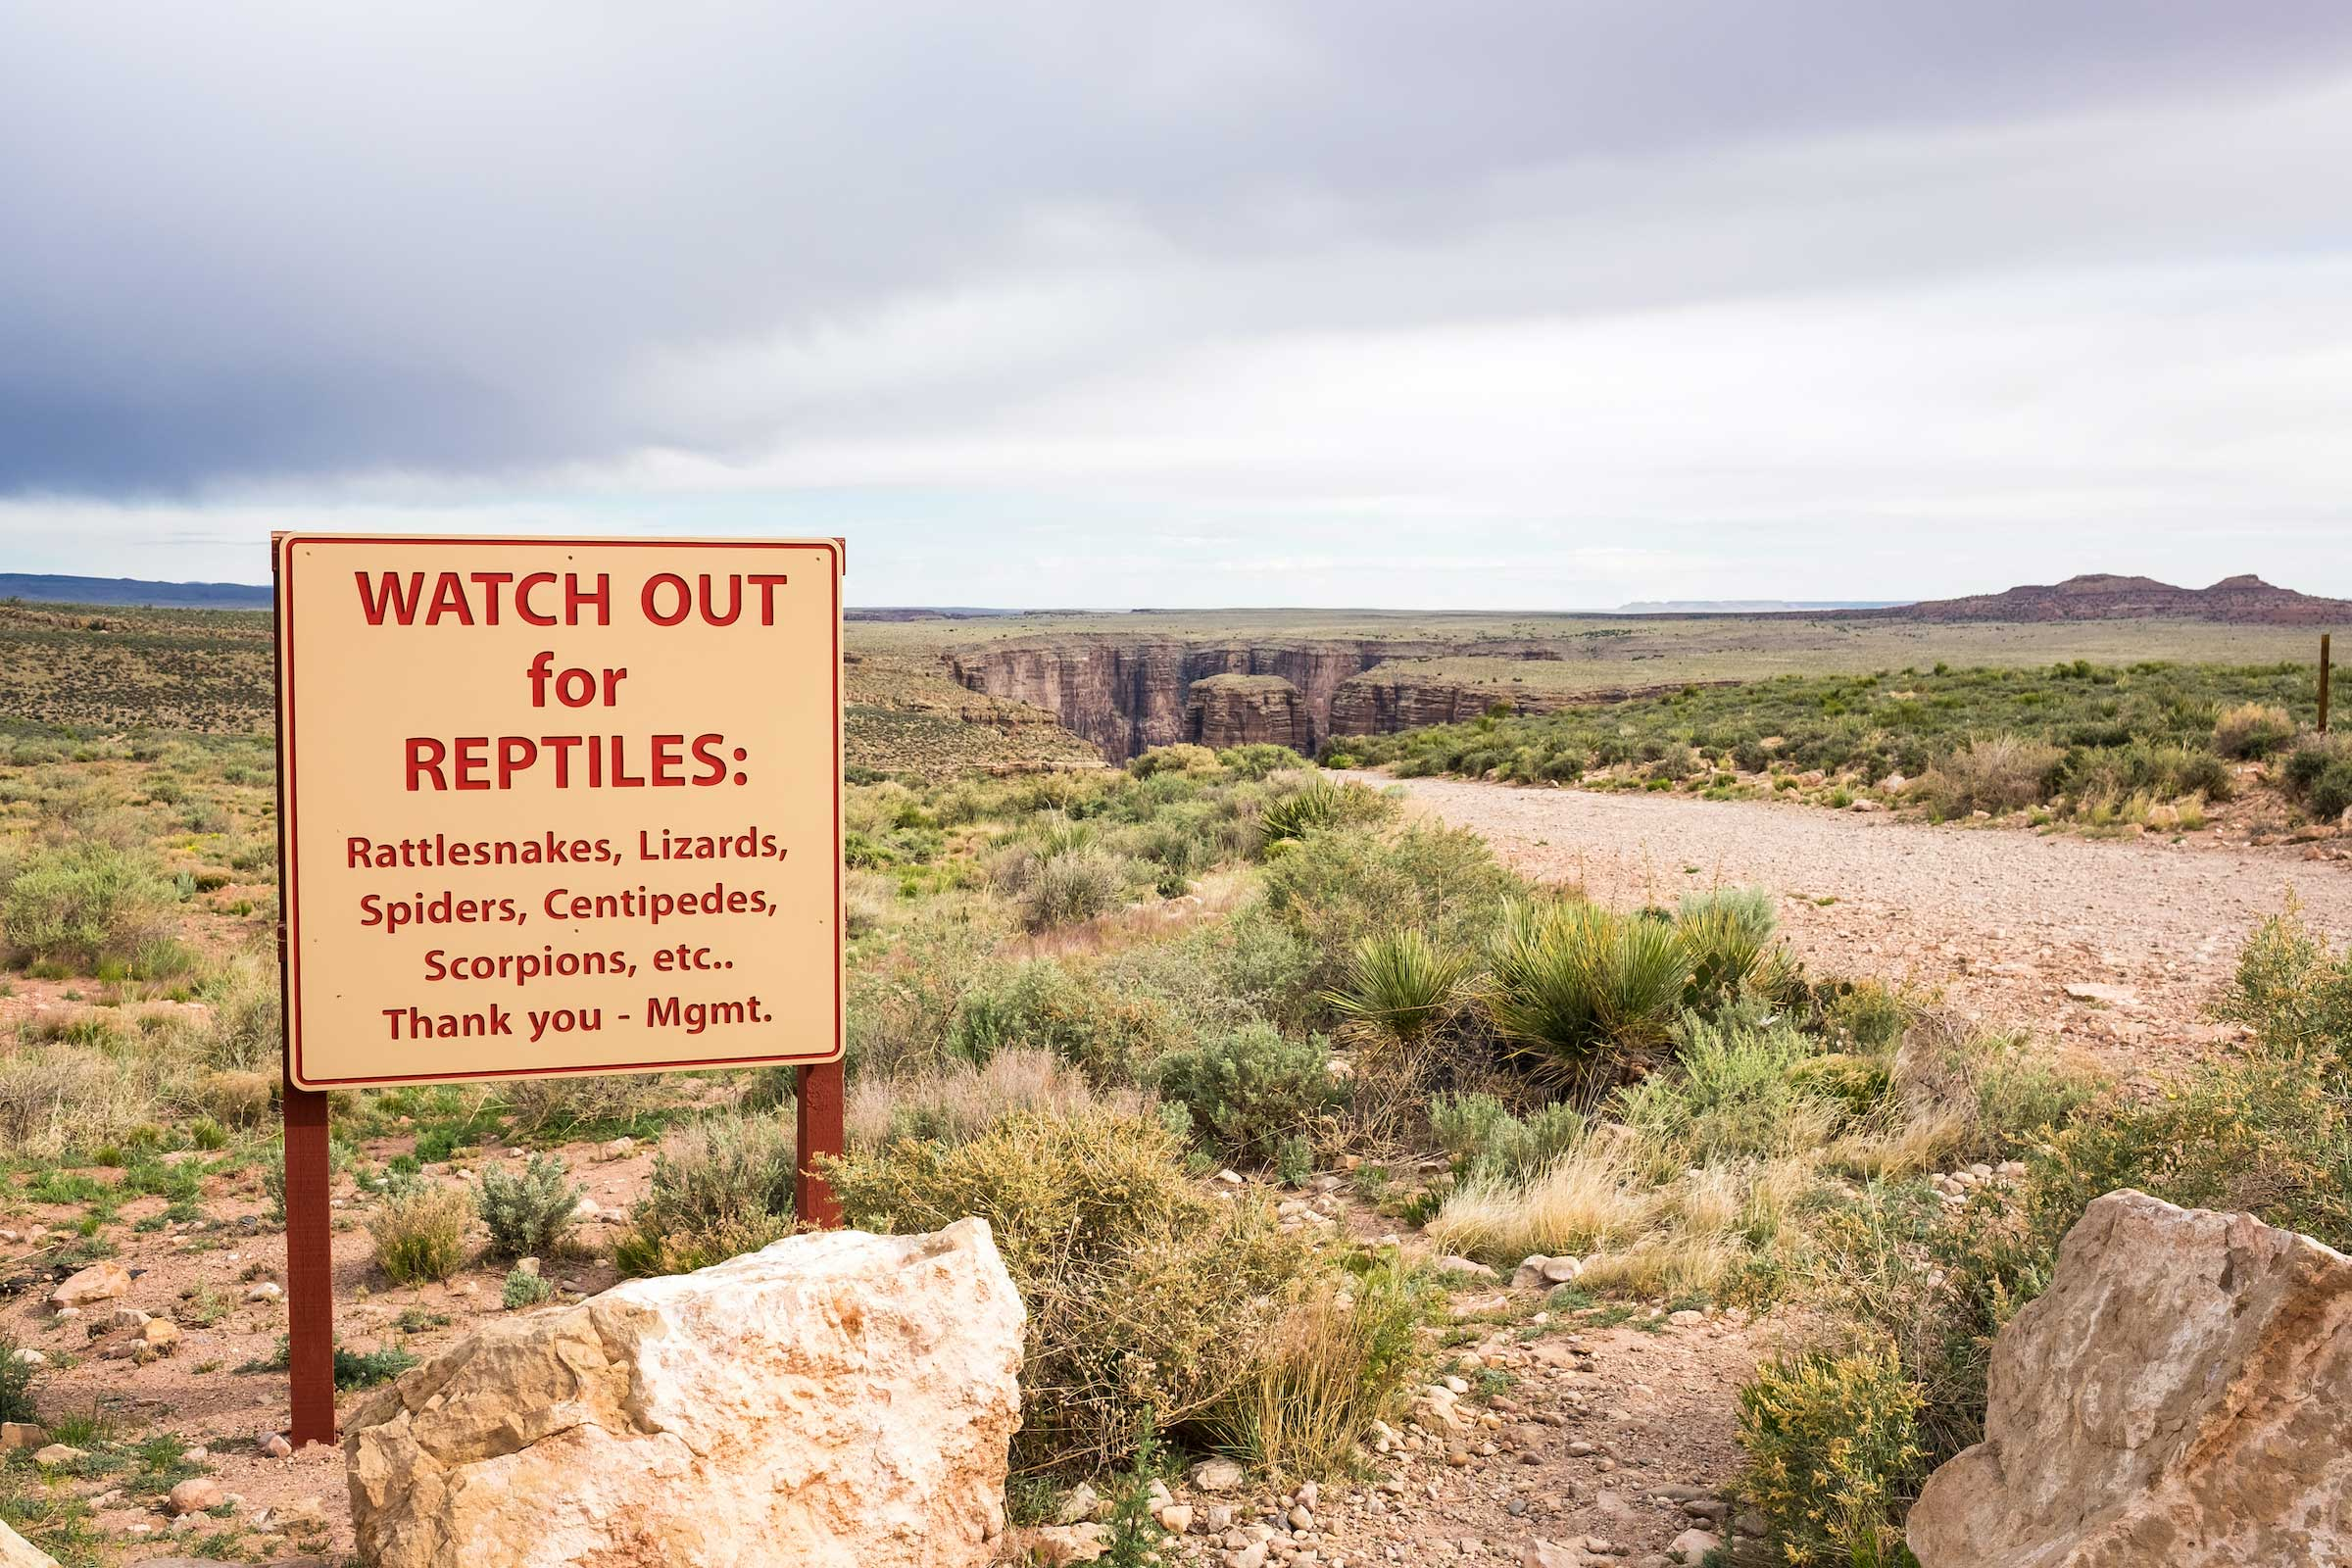 8 Tips to Keep You Safe from Snakes on the Trail